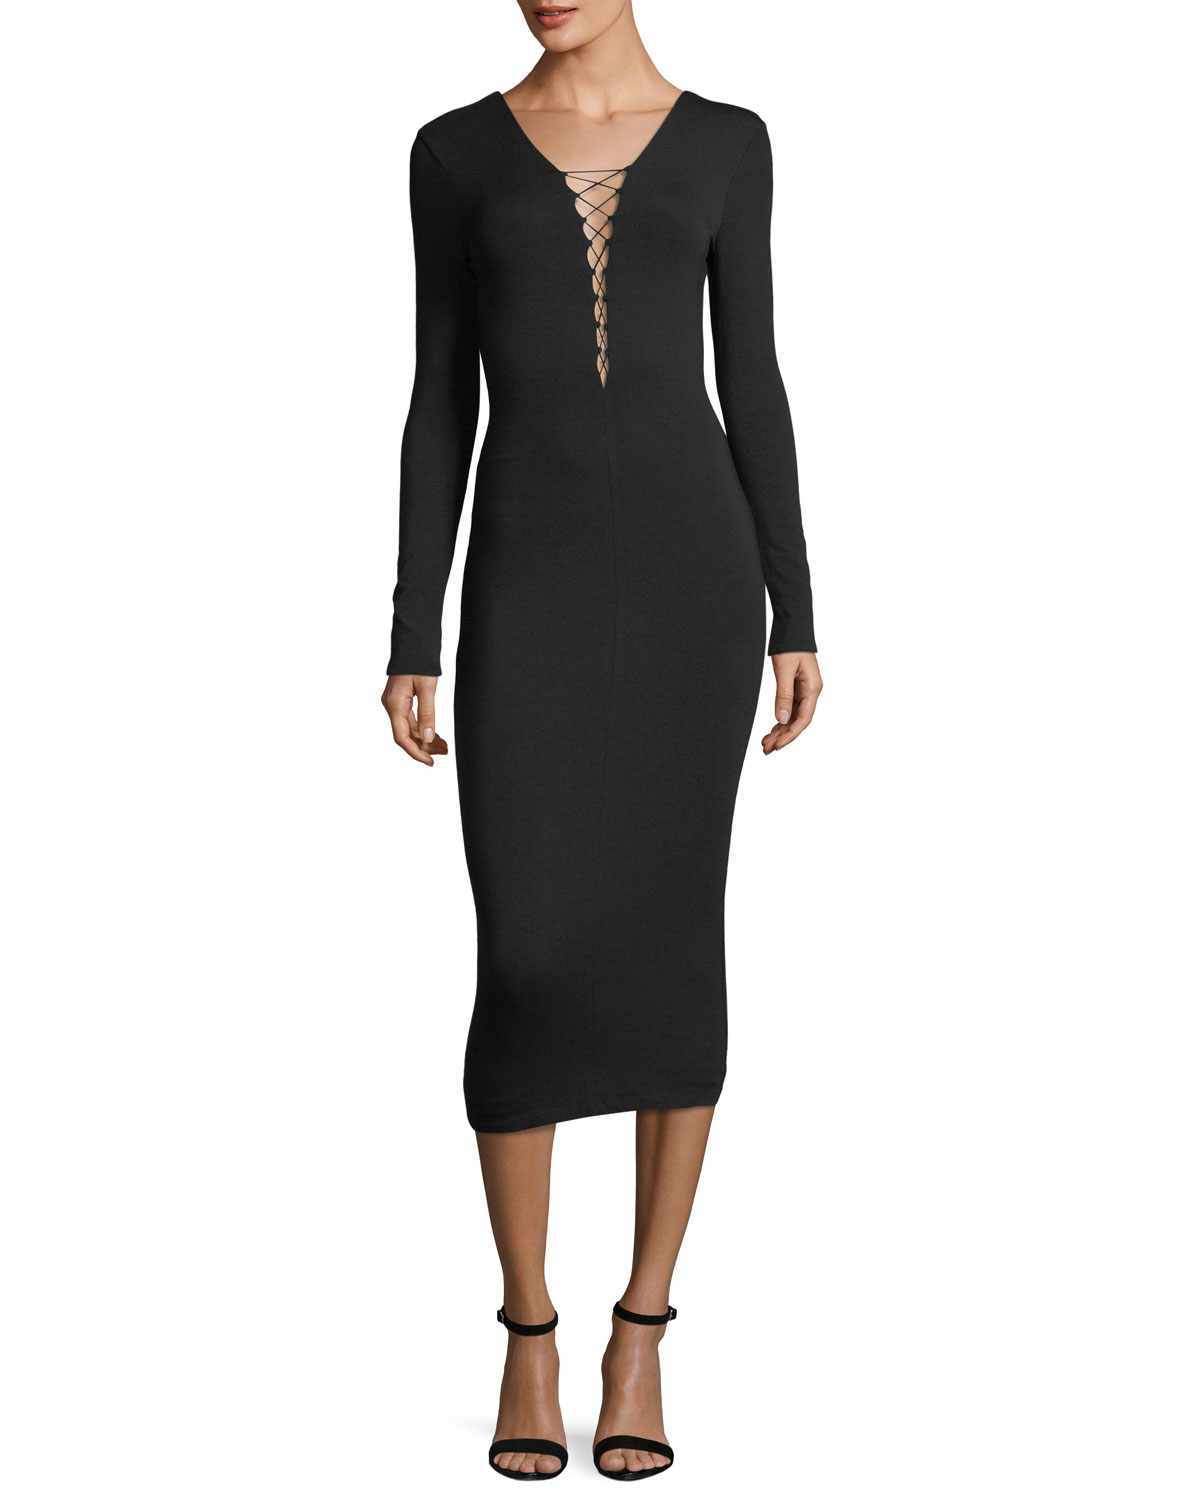 Fitted cocktail dress neiman marcus quick look ombrellifo Gallery